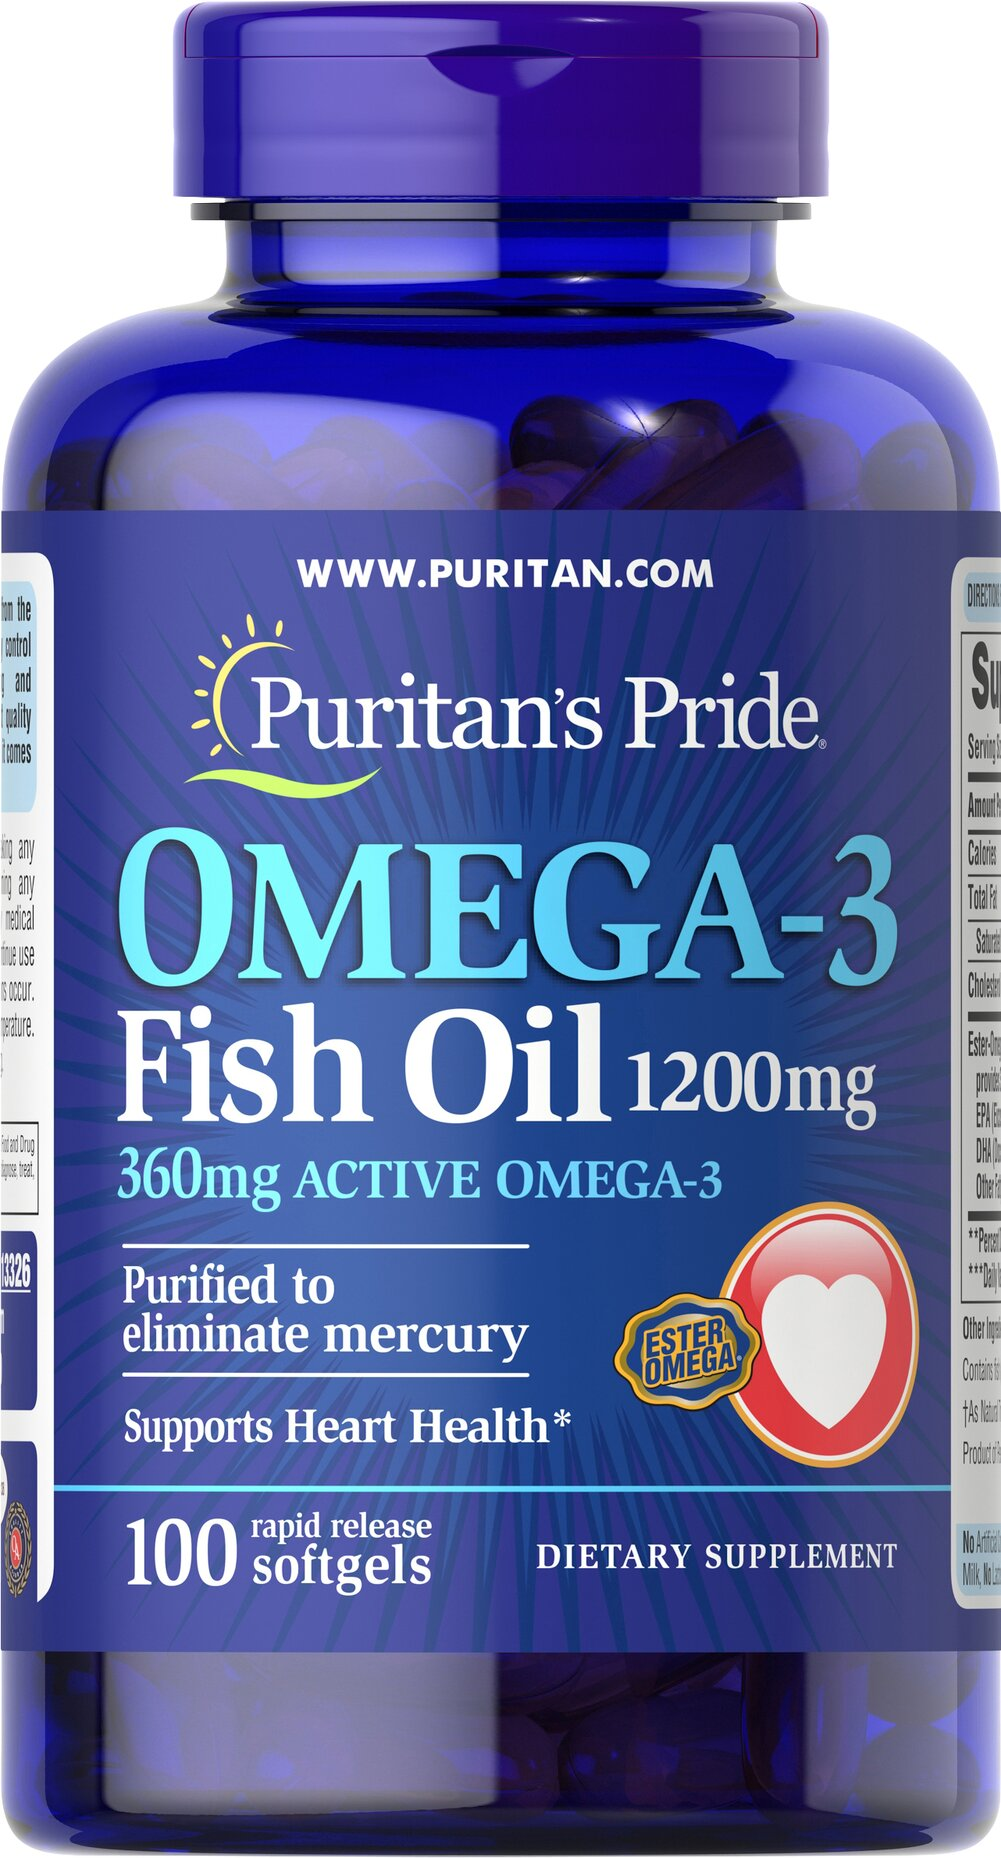 Omega-3 Fish Oil 1200 mg (360 mg Active Omega-3) <p><span></span></p><p>This Ester-Omega® Fish Oil provides 360mg of total omega-3 fatty acids, comprising of EPA, DHA and other fatty acids. EPA and DHA fatty acids support heart health.** Purified to eliminate mercury. Rapid release softgels.</p><p></p><p></p> 100 Softgels 1200 mg $11.59